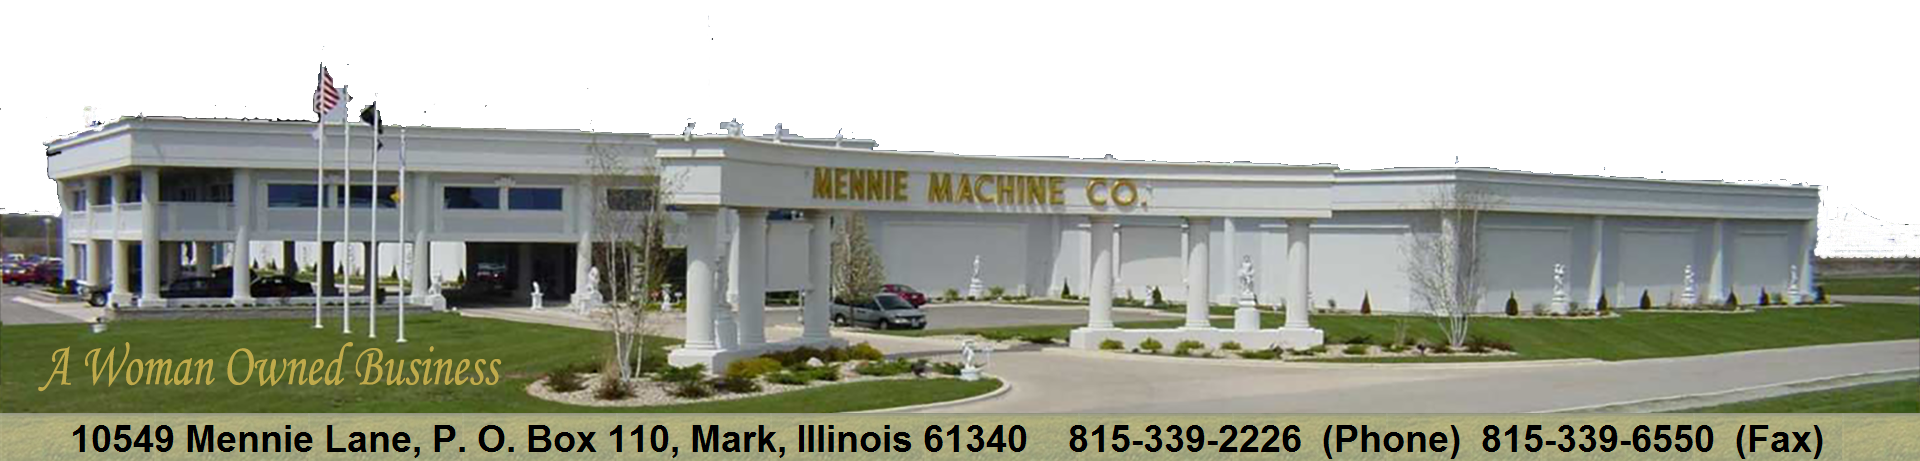 mennie machine company3